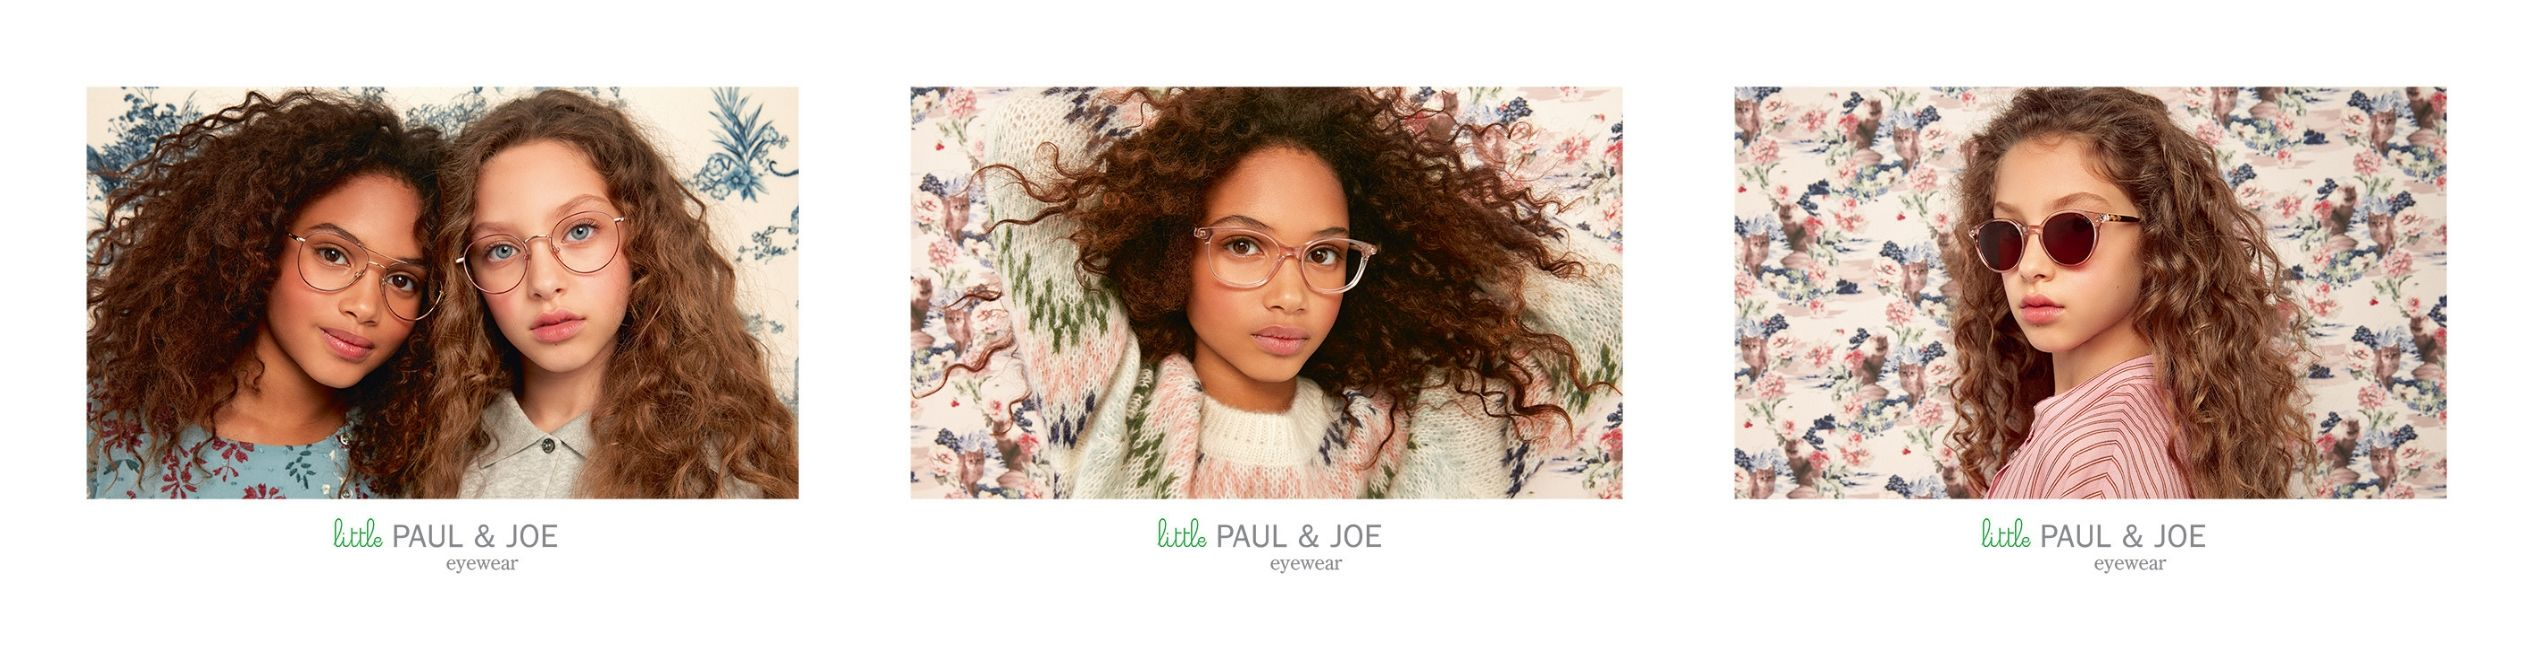 lunettes little paul joe fille